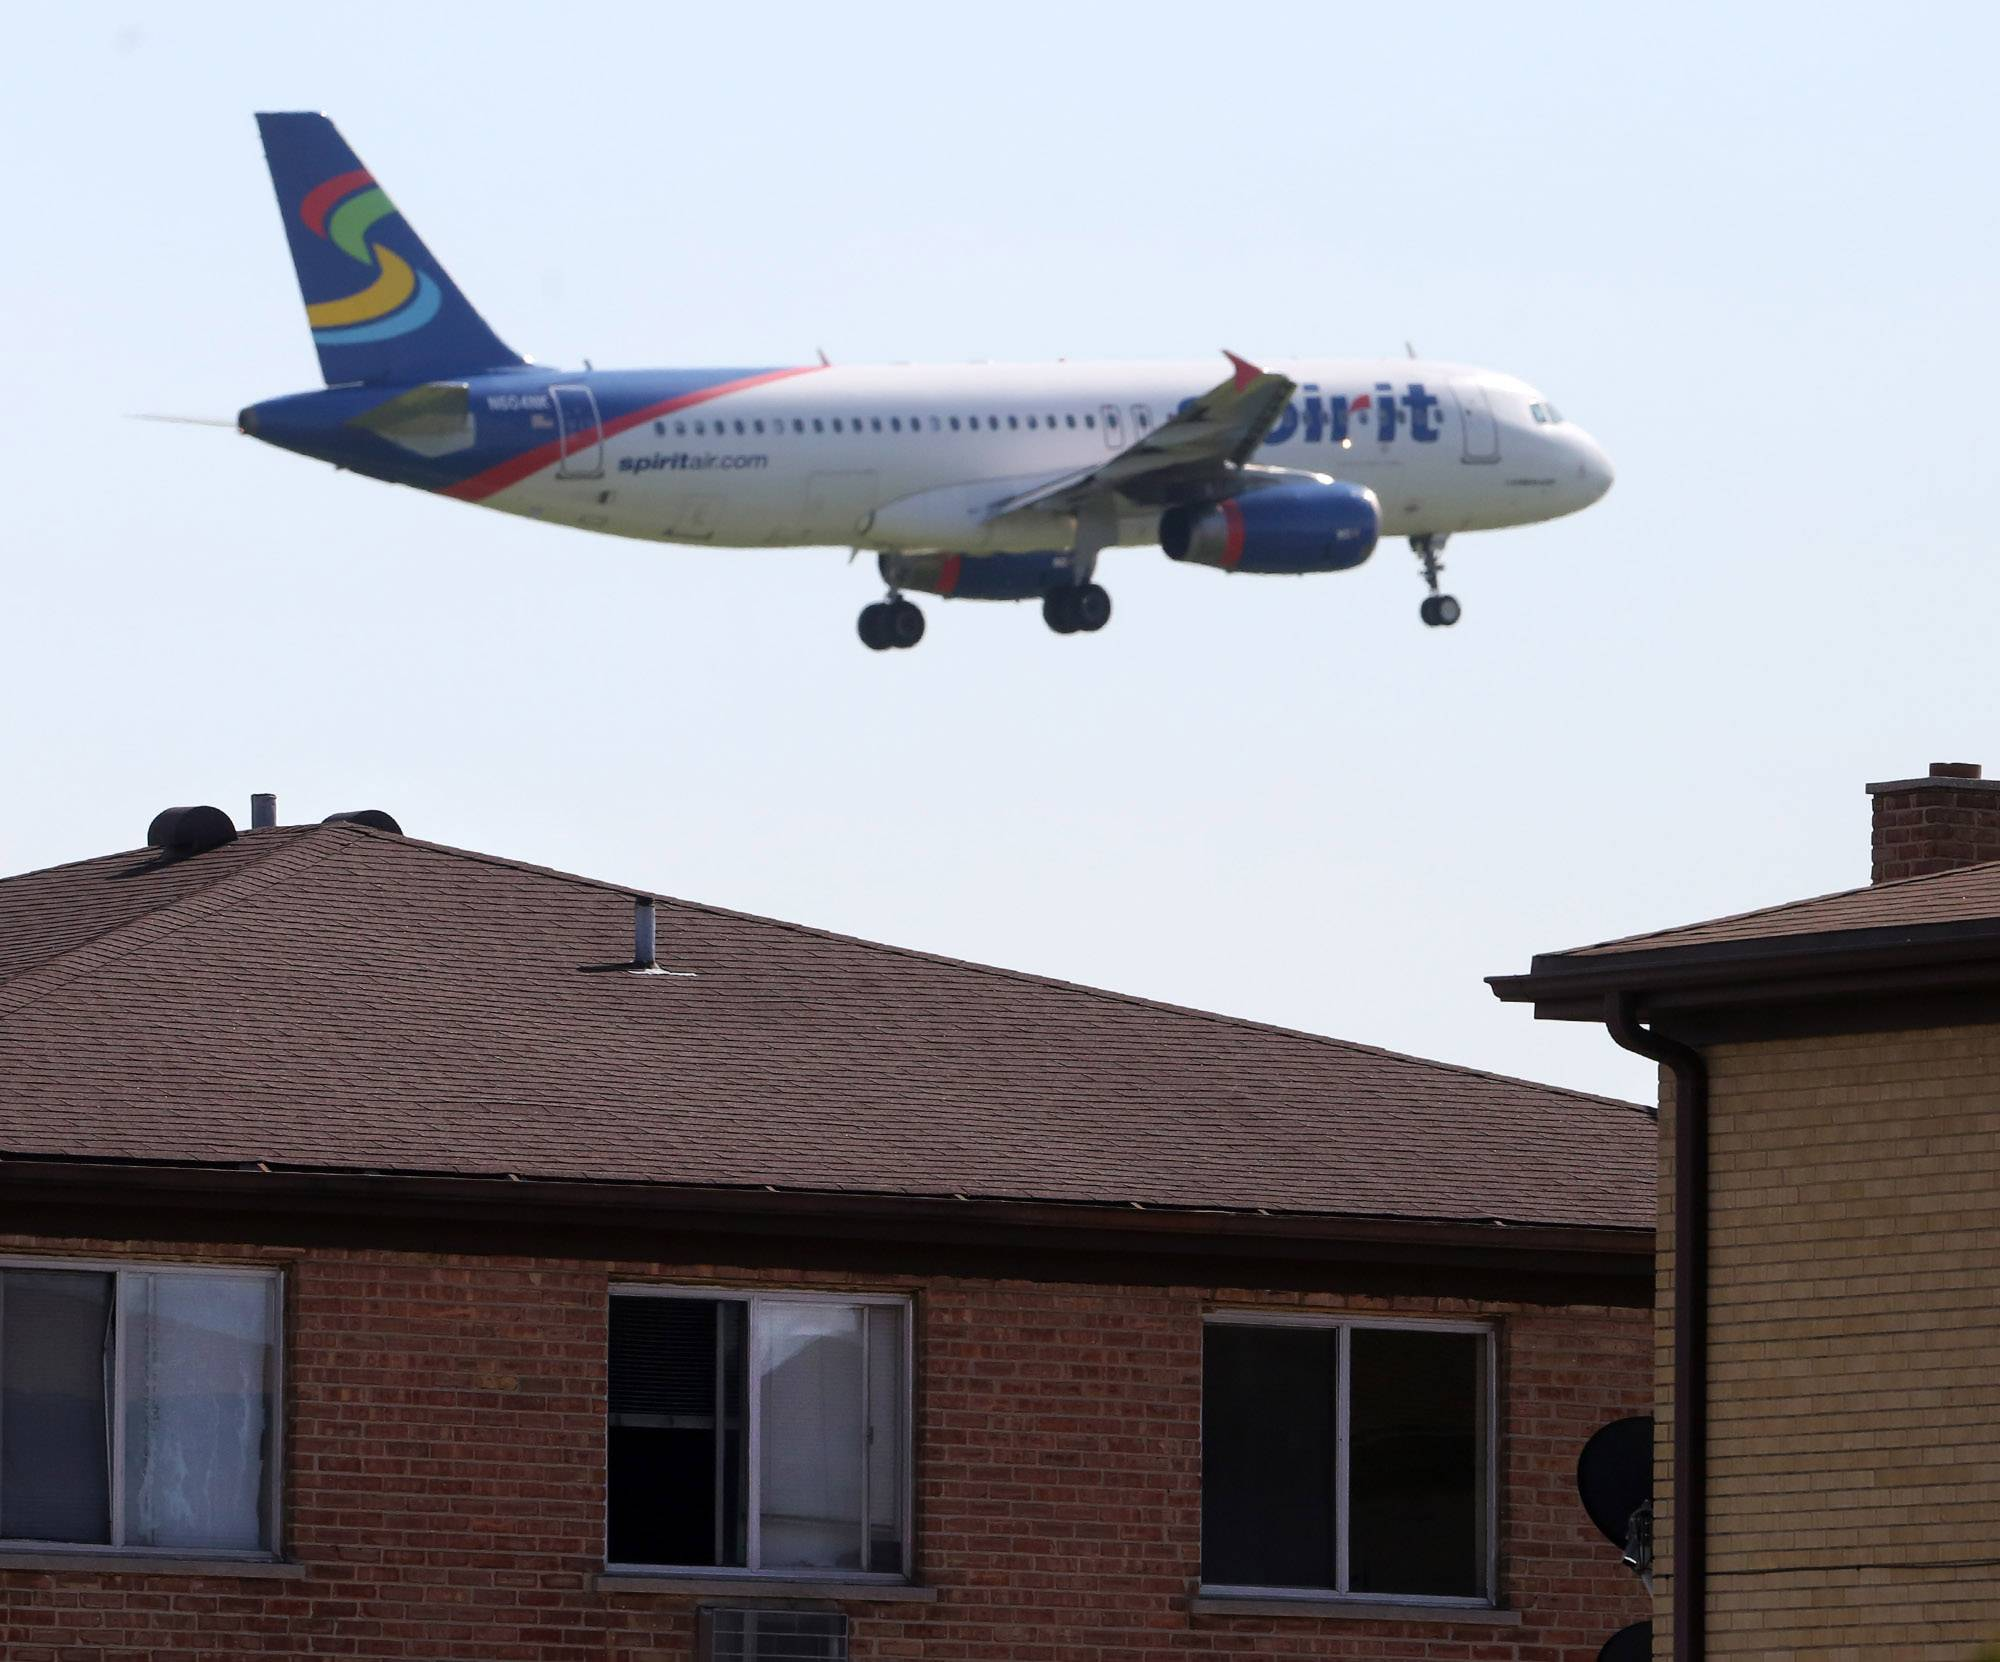 New overnight noise plan at O'Hare is dividing suburbs